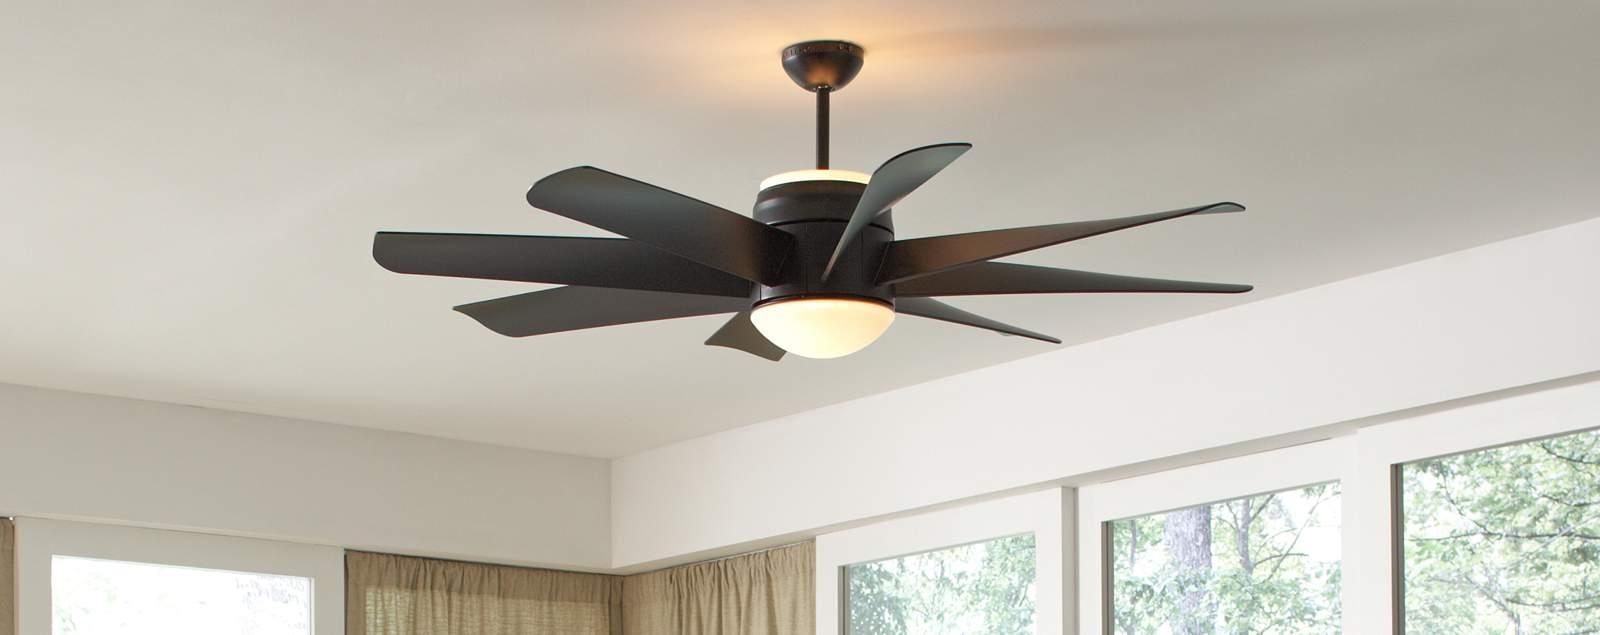 Widely Used Ceiling Fan With Uplight Within Outdoor Ceiling Fans With Uplights (View 20 of 20)